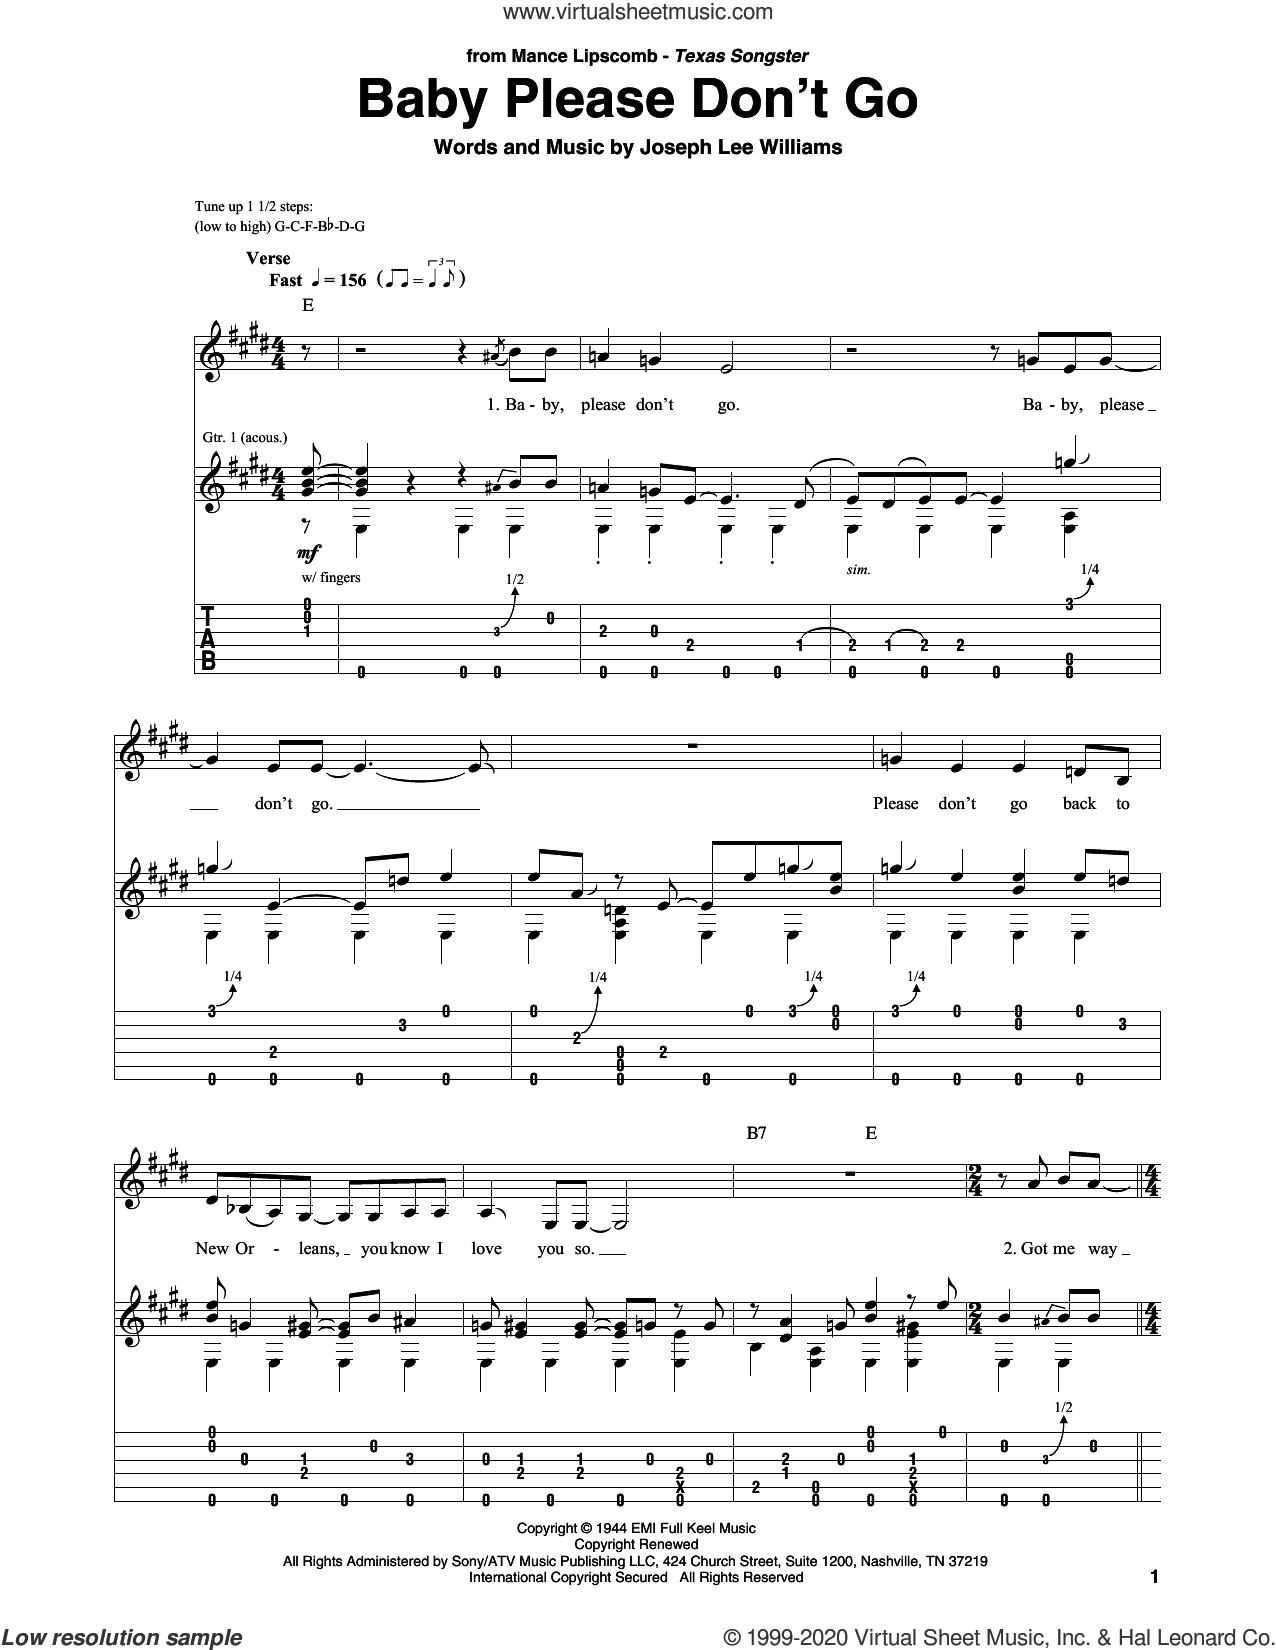 Baby Please Don't Go sheet music for guitar solo by Them, Van Morrison and Joseph Lee Williams, intermediate skill level